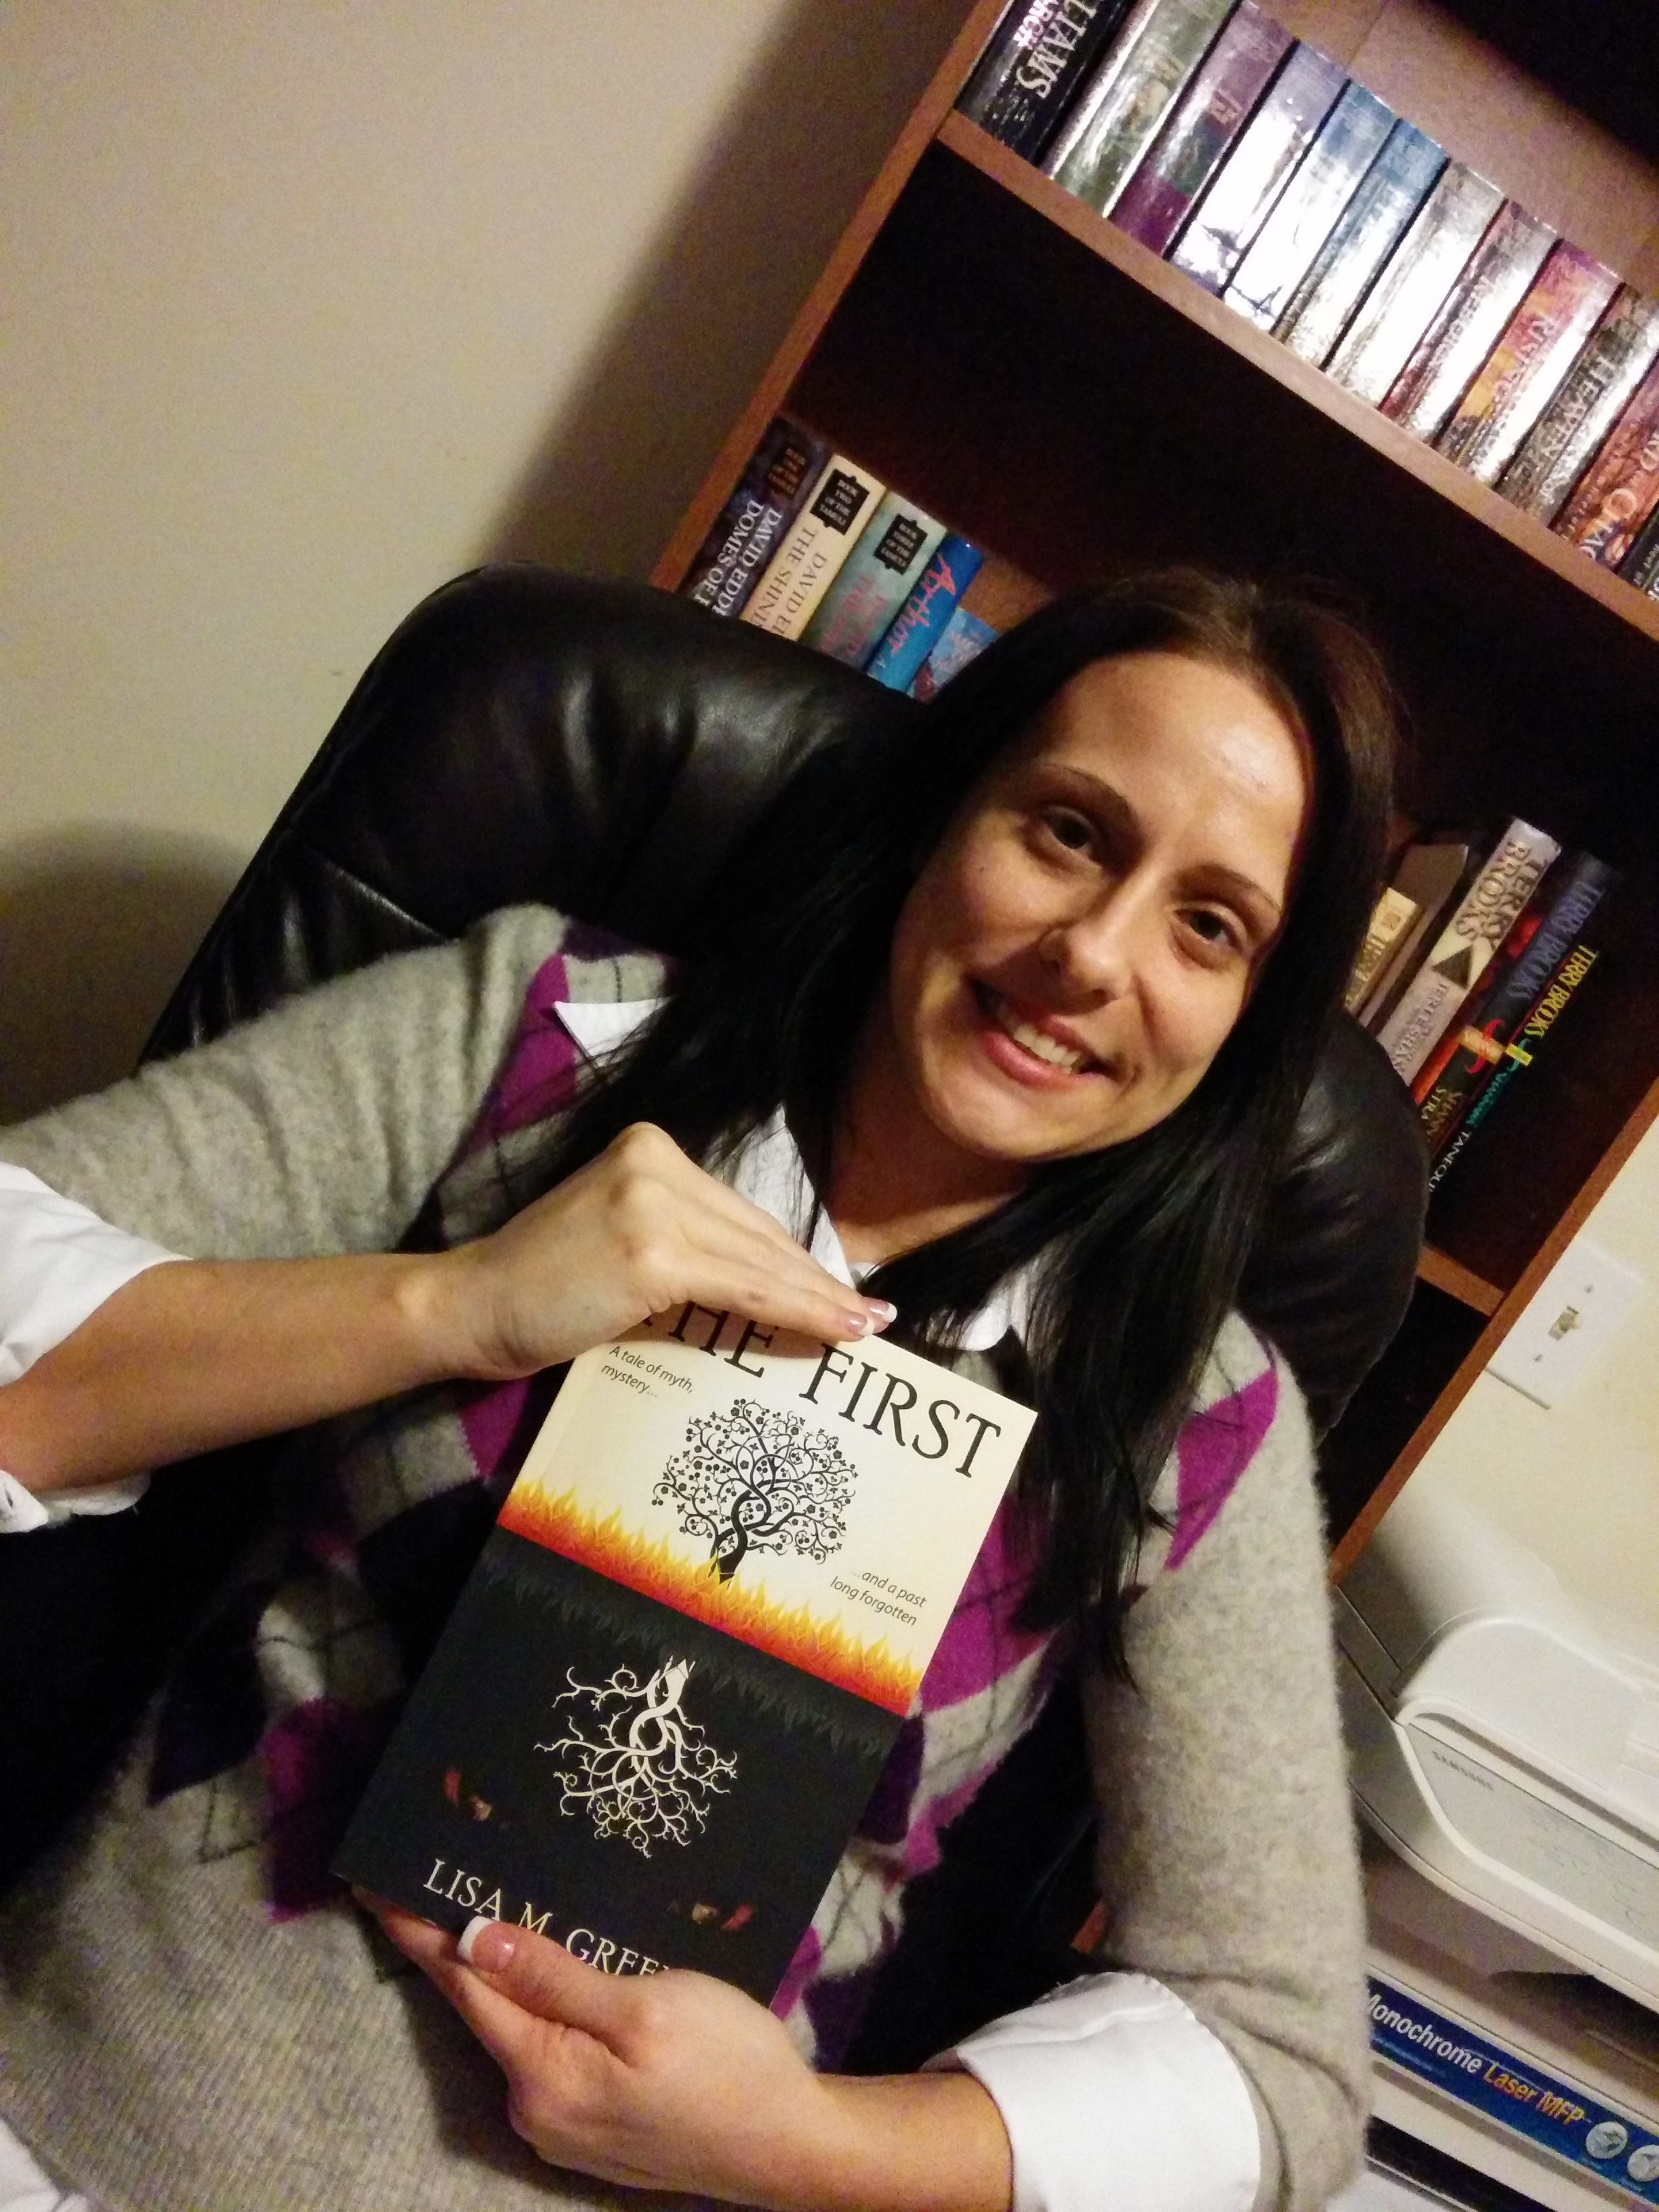 Lisa M. Green holding her book The First